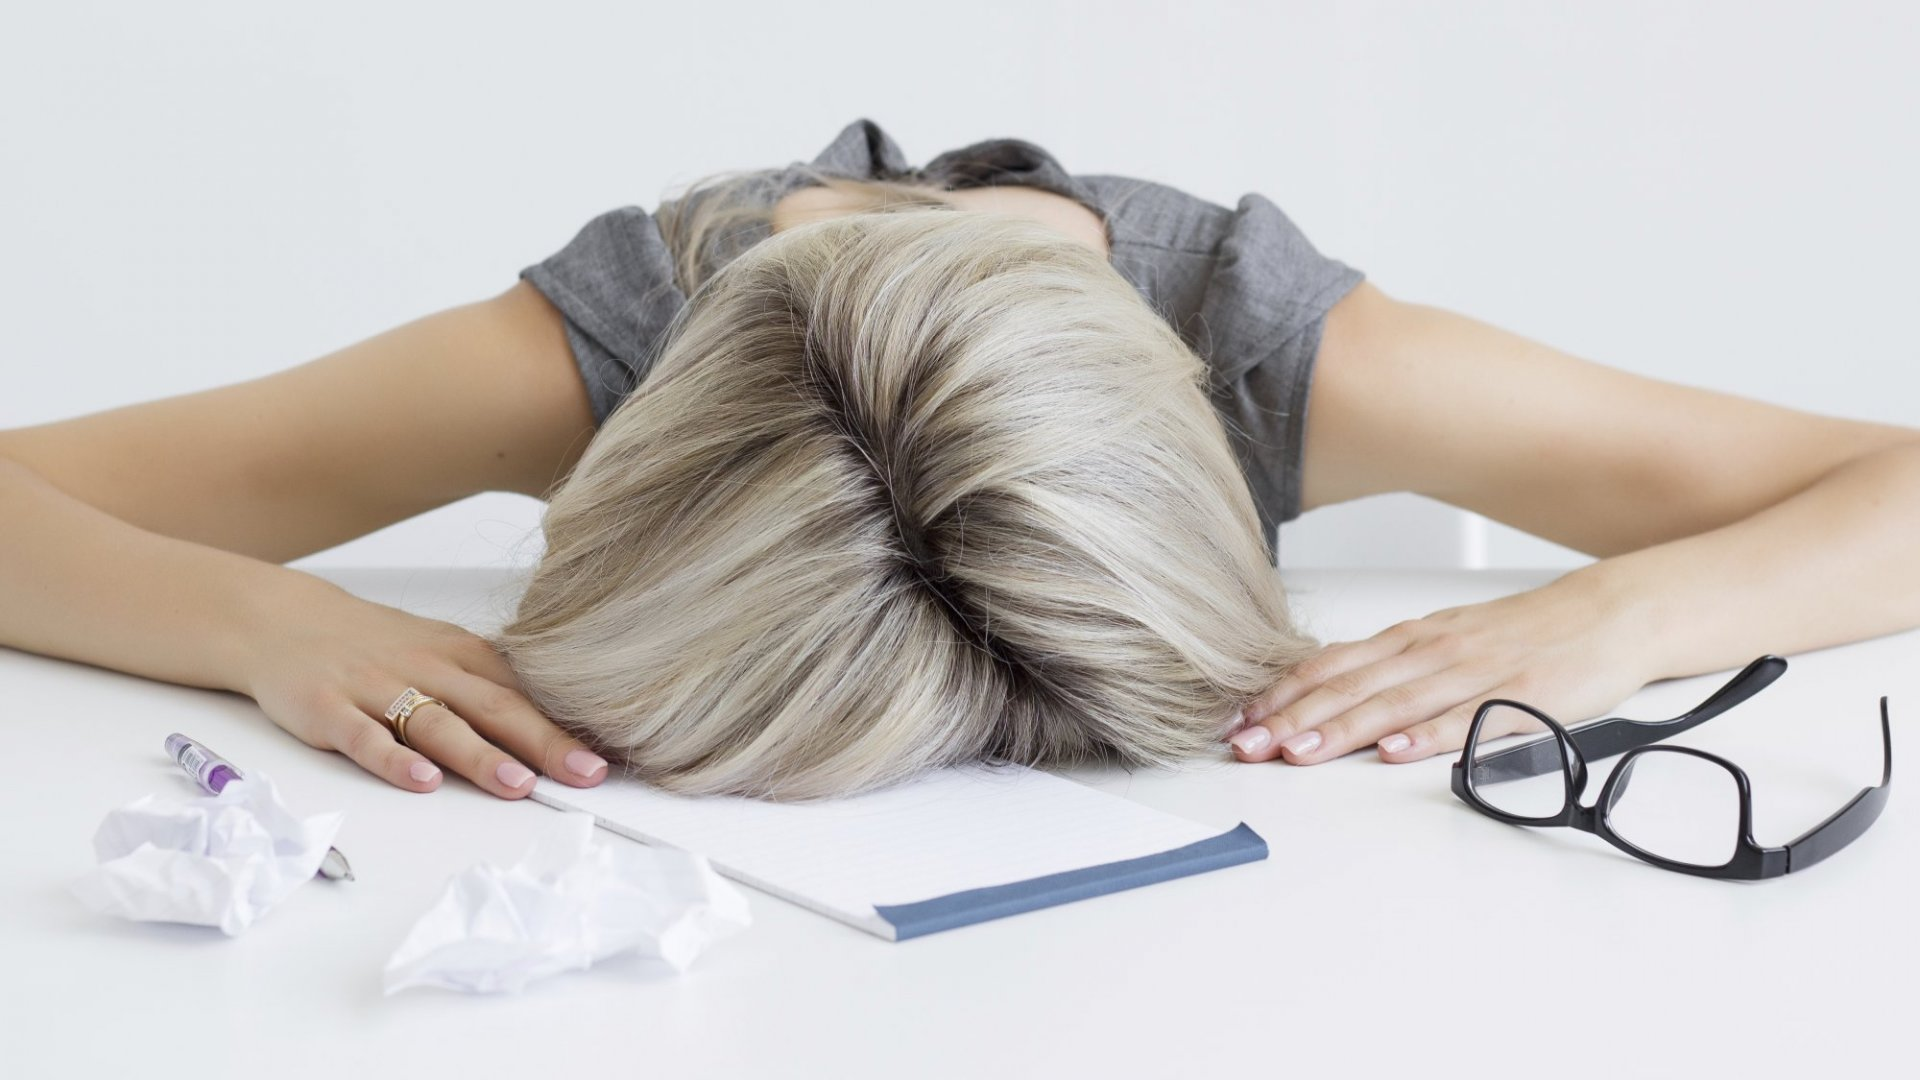 10 Simple Ways You Can Combat Fatigue